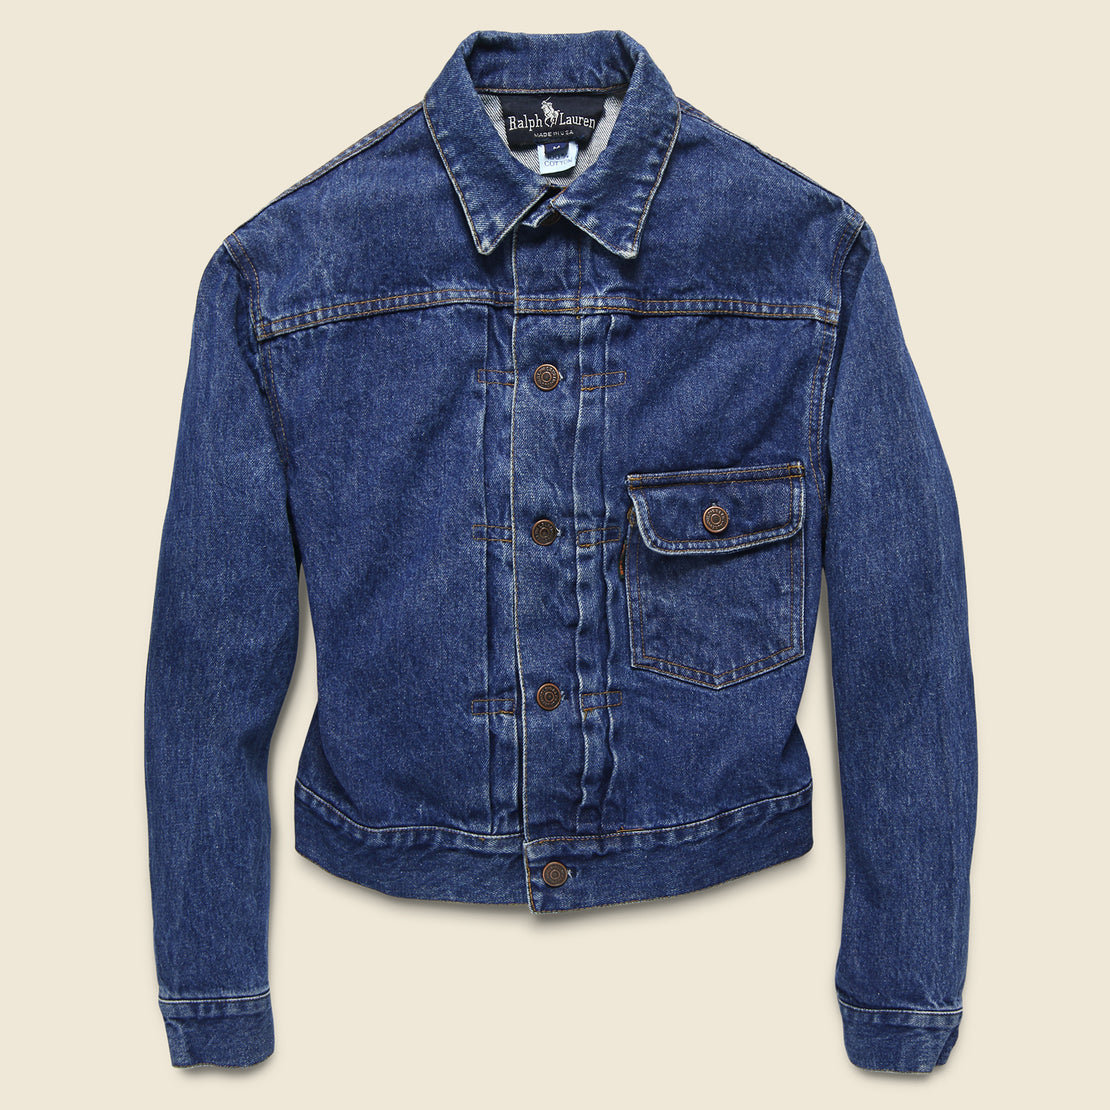 Vintage Ralph Lauren Buckle Back Denim Jacket - Indigo